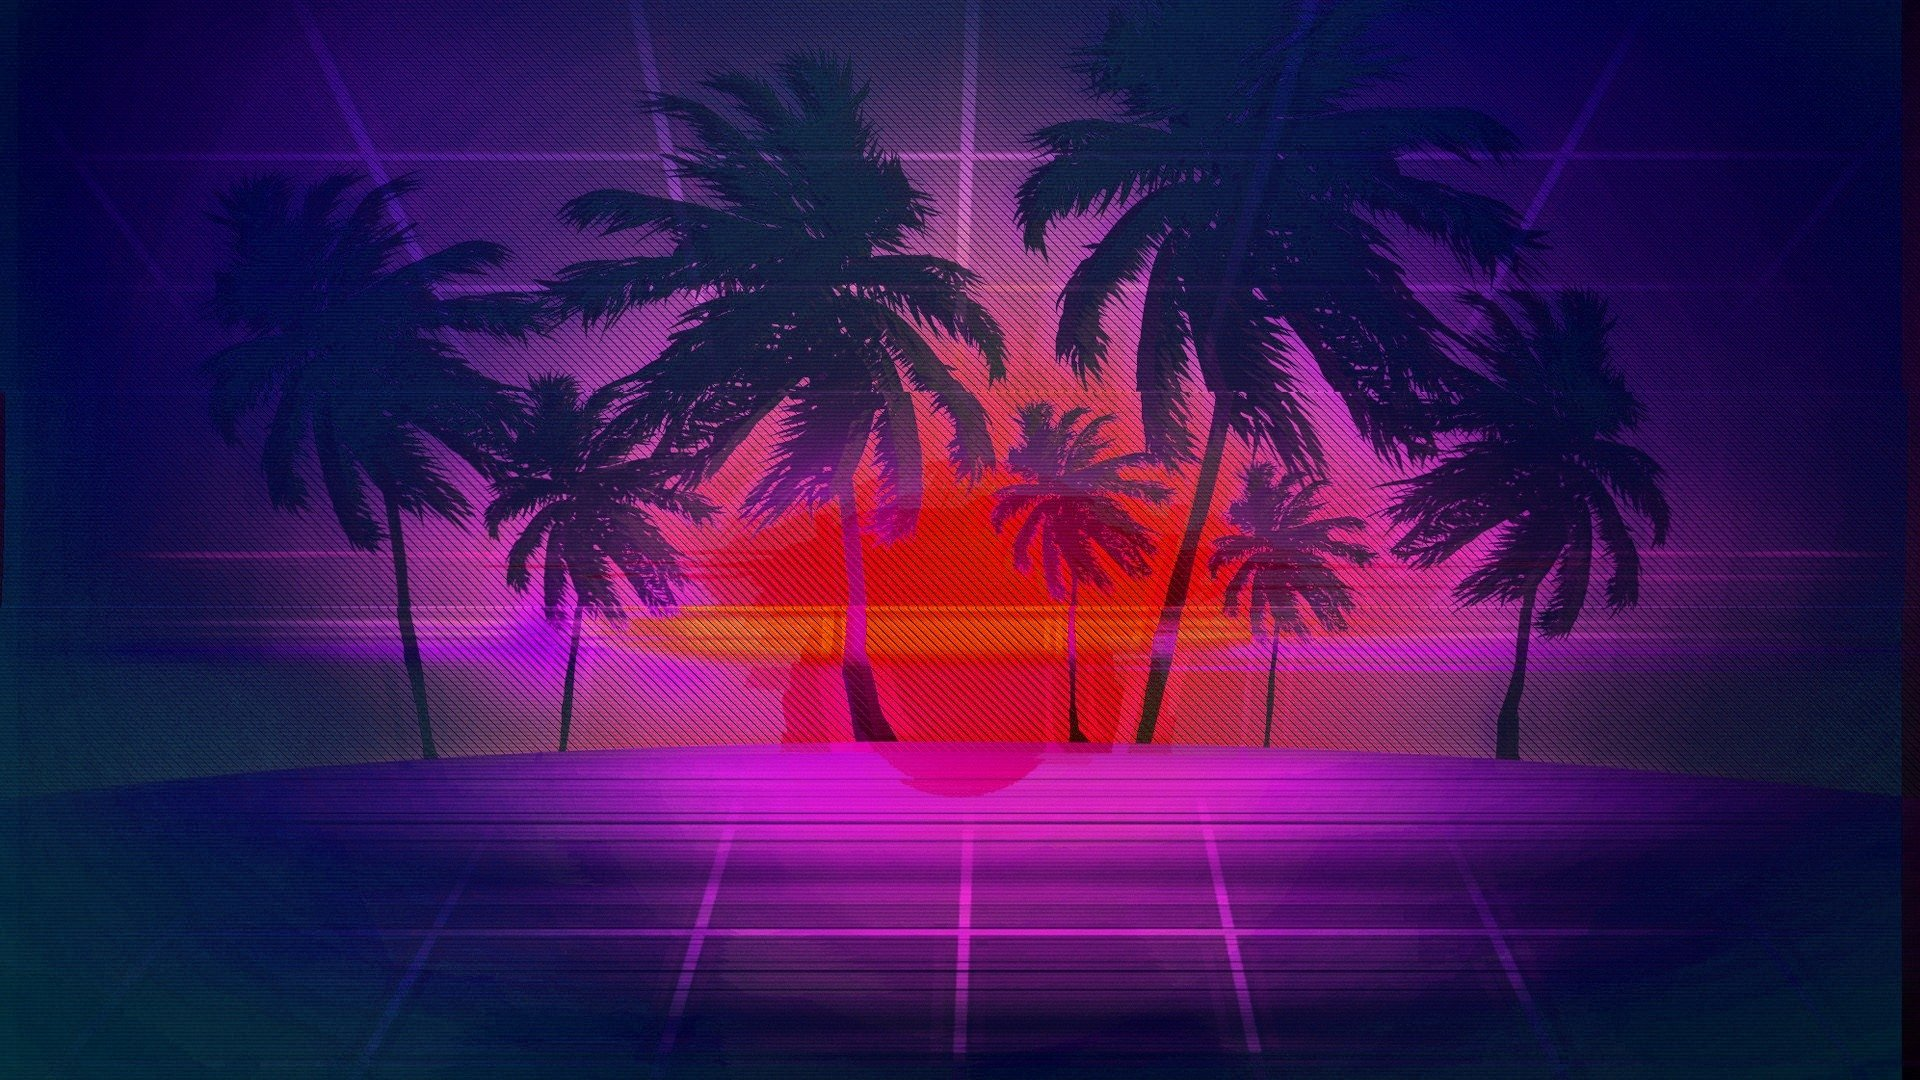 vaporwave backgroundjpeg by soopa46 - photo #4